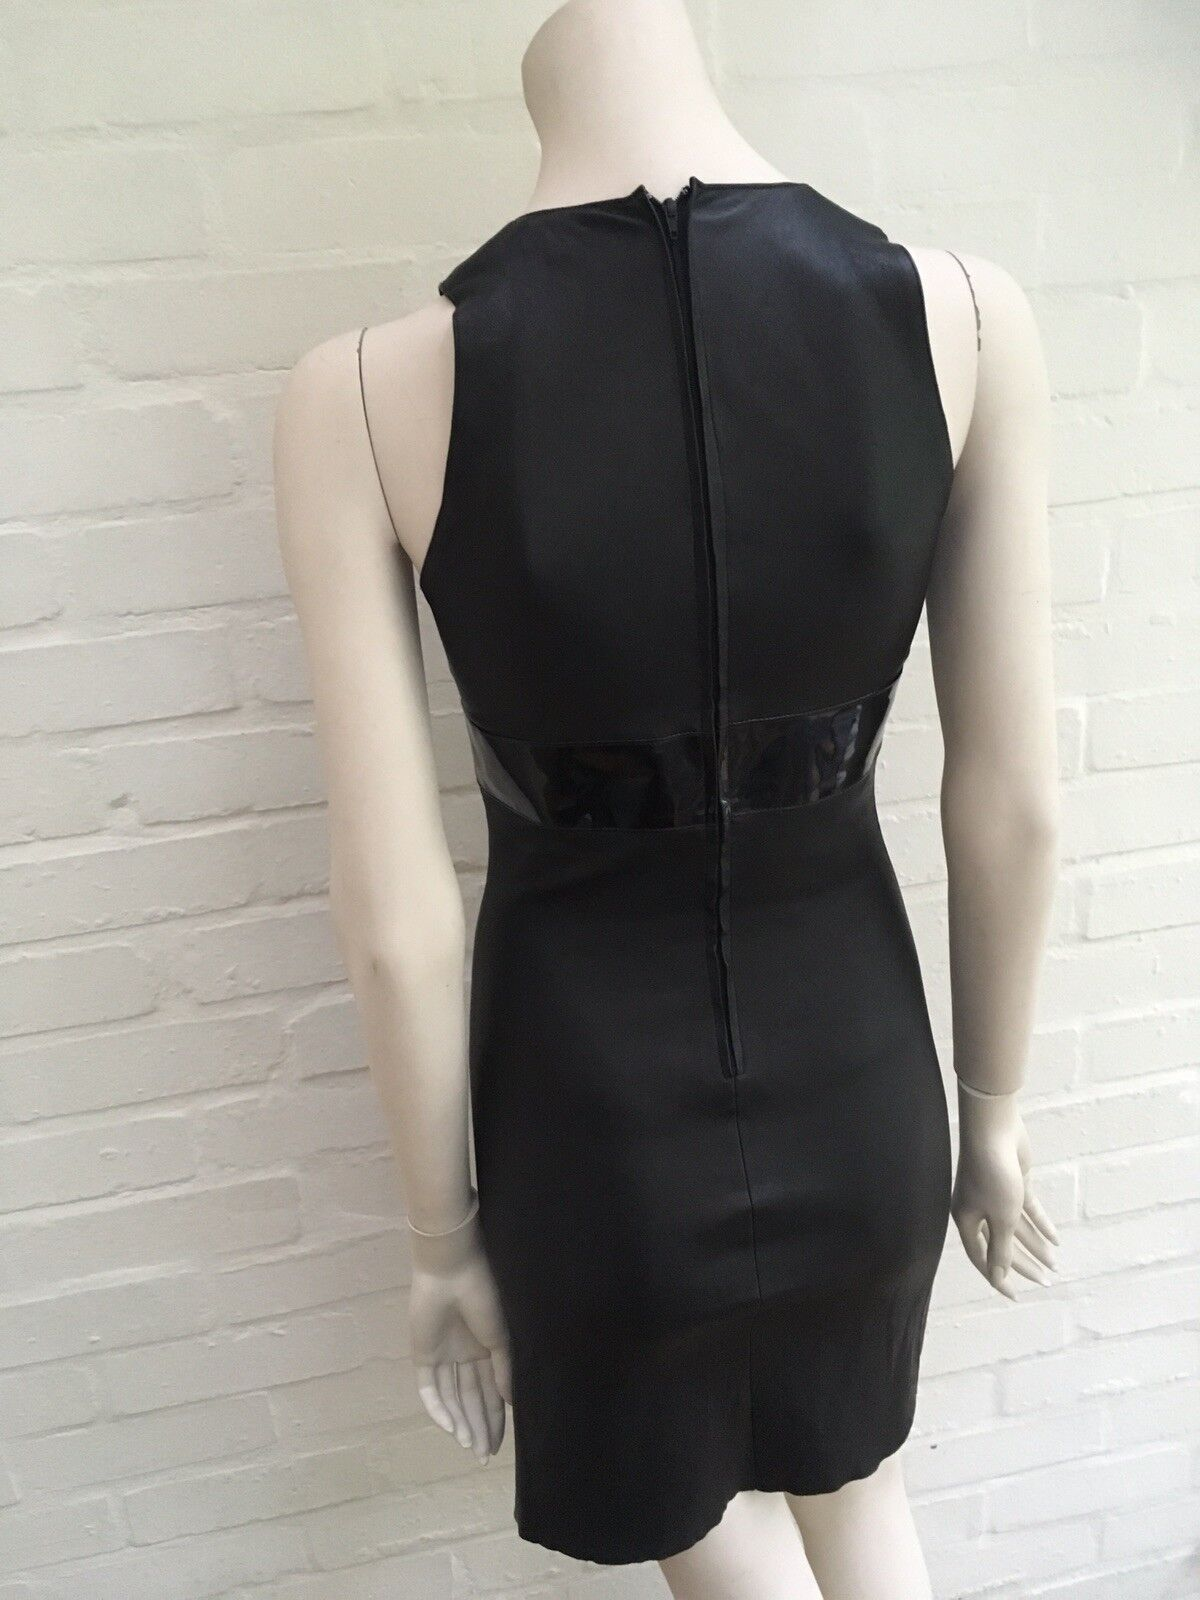 JITROIS leather leather leather bodycon mini dress patent leather trim F 36 US 4 S SMALL 49aa36